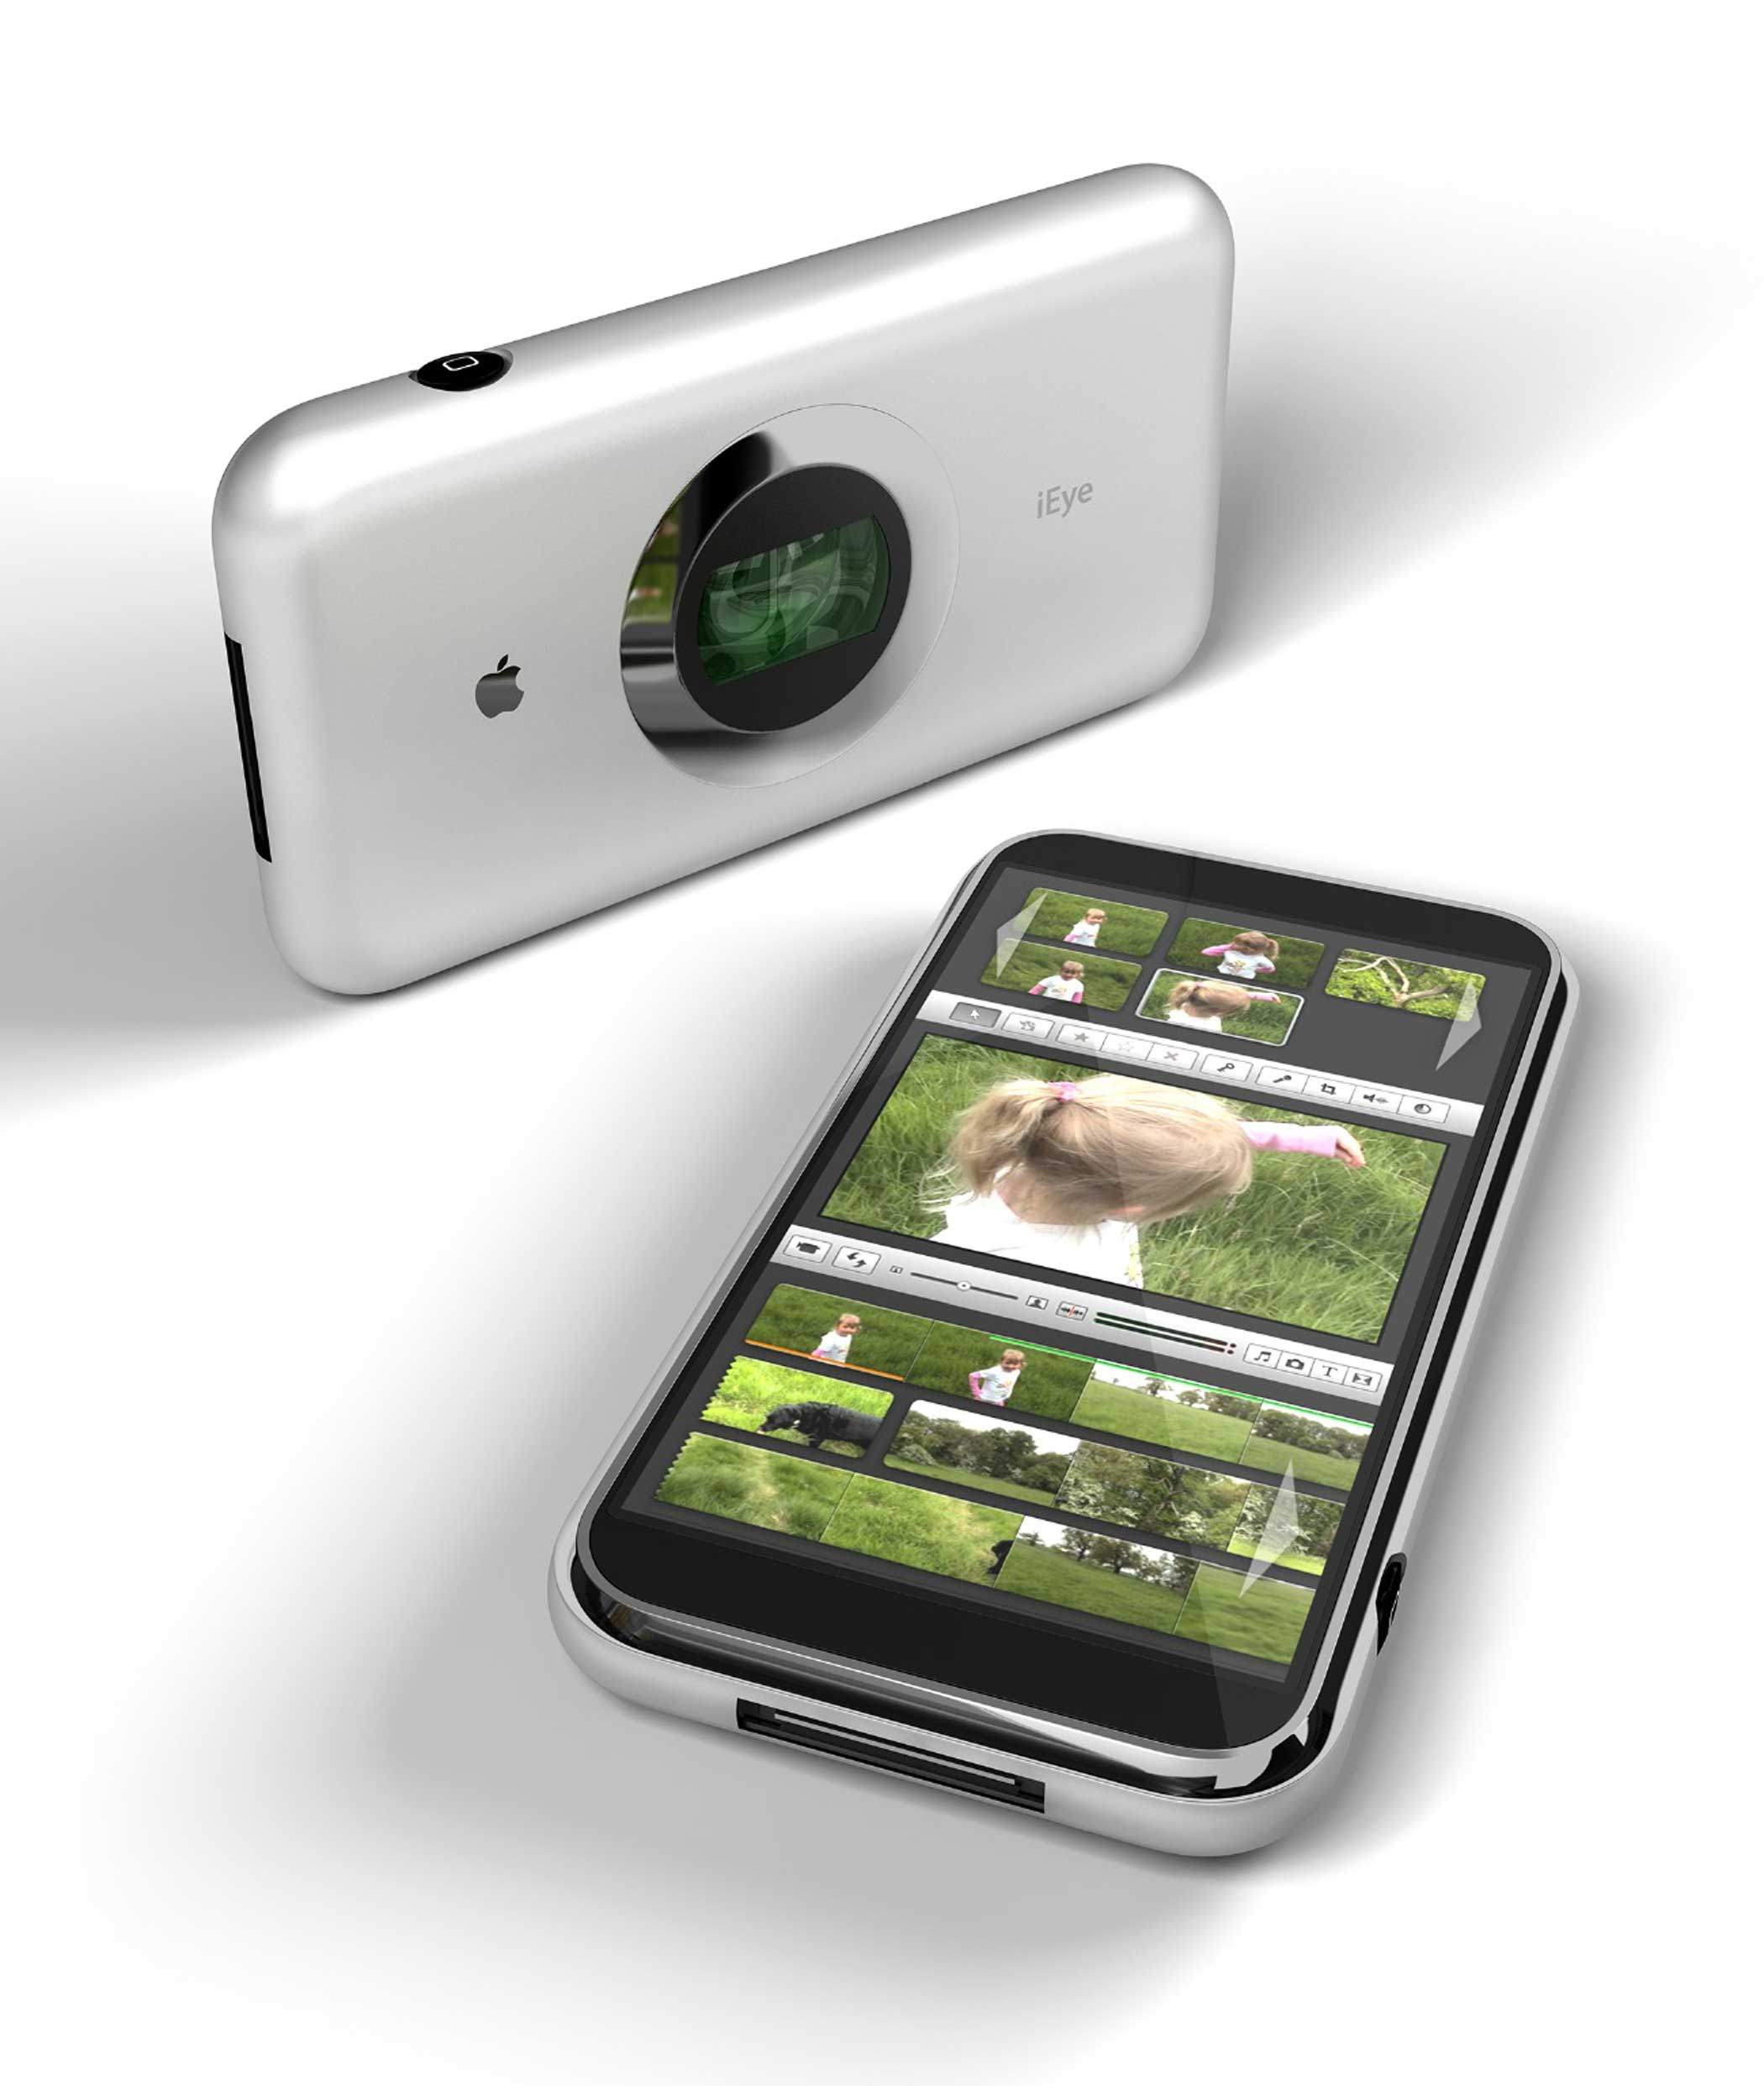 2007: iEye This camera focused iPhone would have had 5.1 megapixels, ahead of its time for 2007 but far behind what current iPhones have.